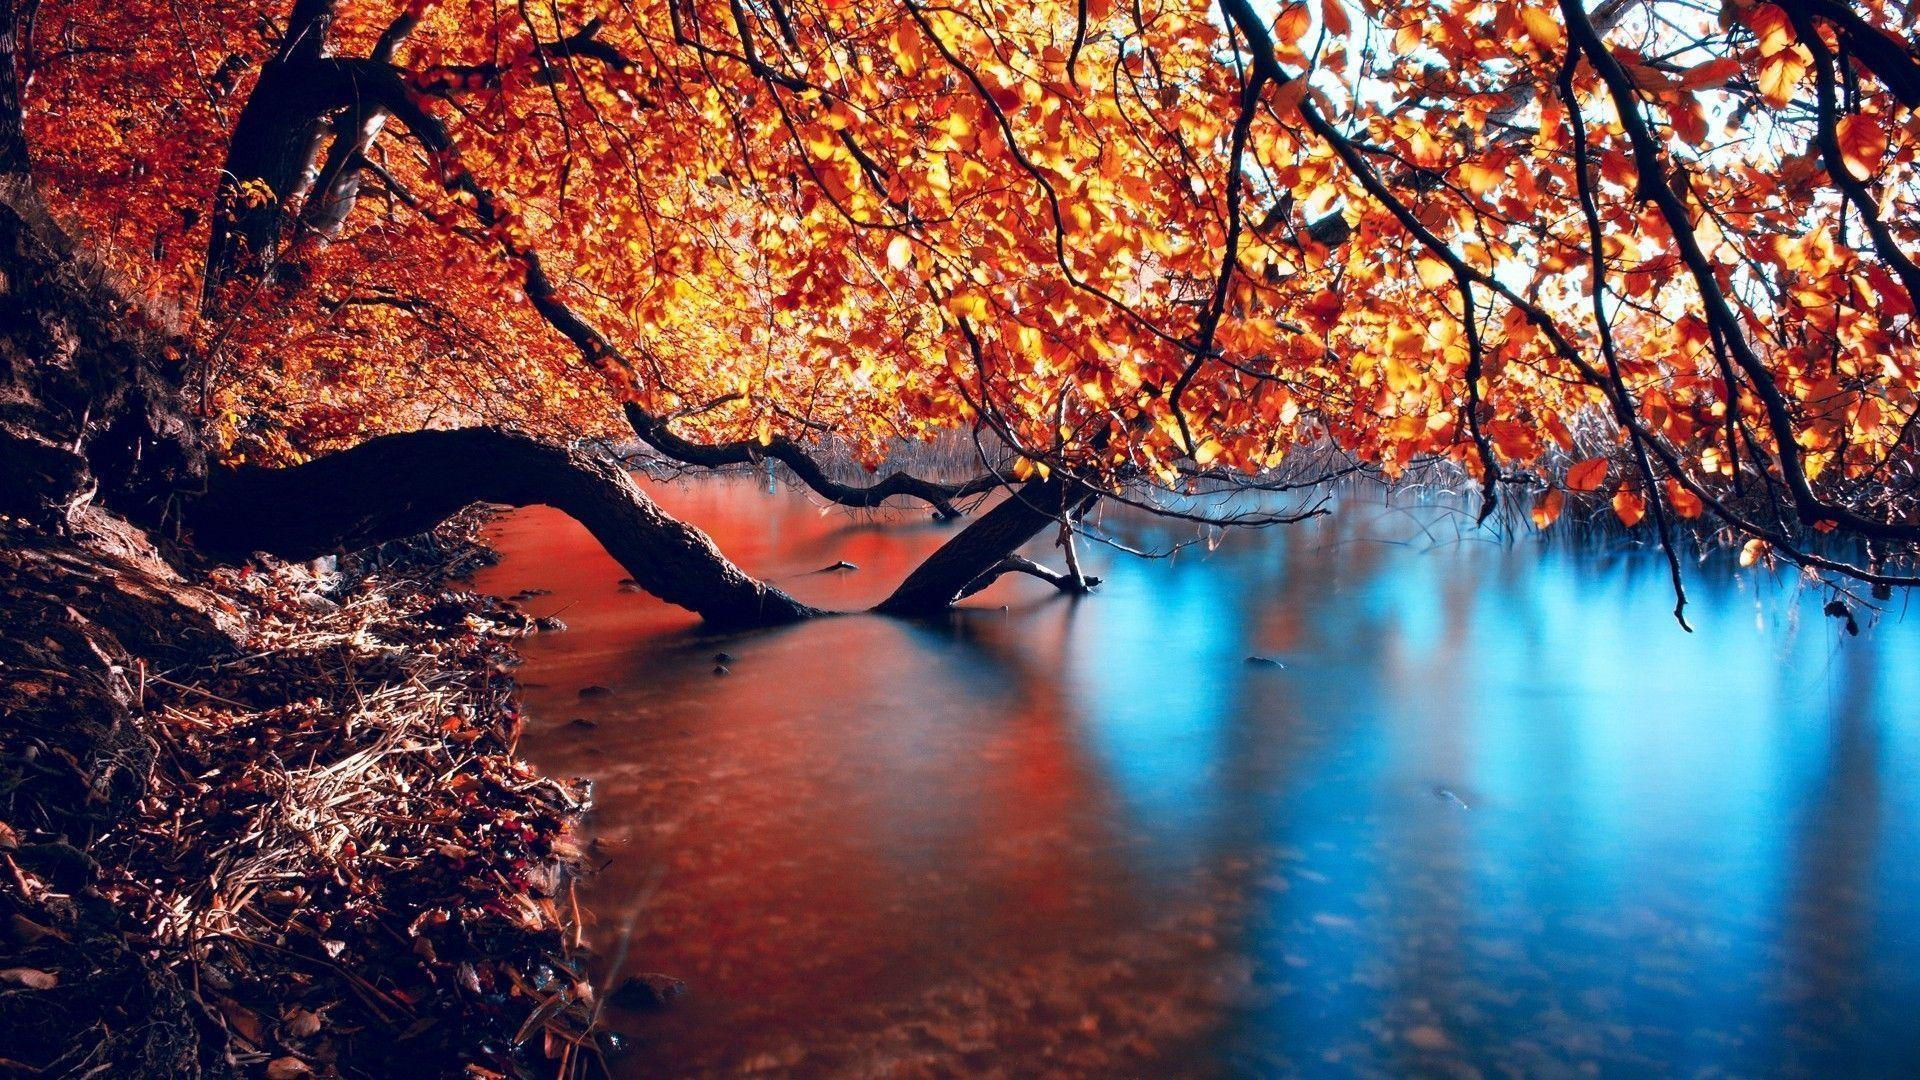 Hd Wallpapers Autumn Lake Full Desktop 1080p 1920x